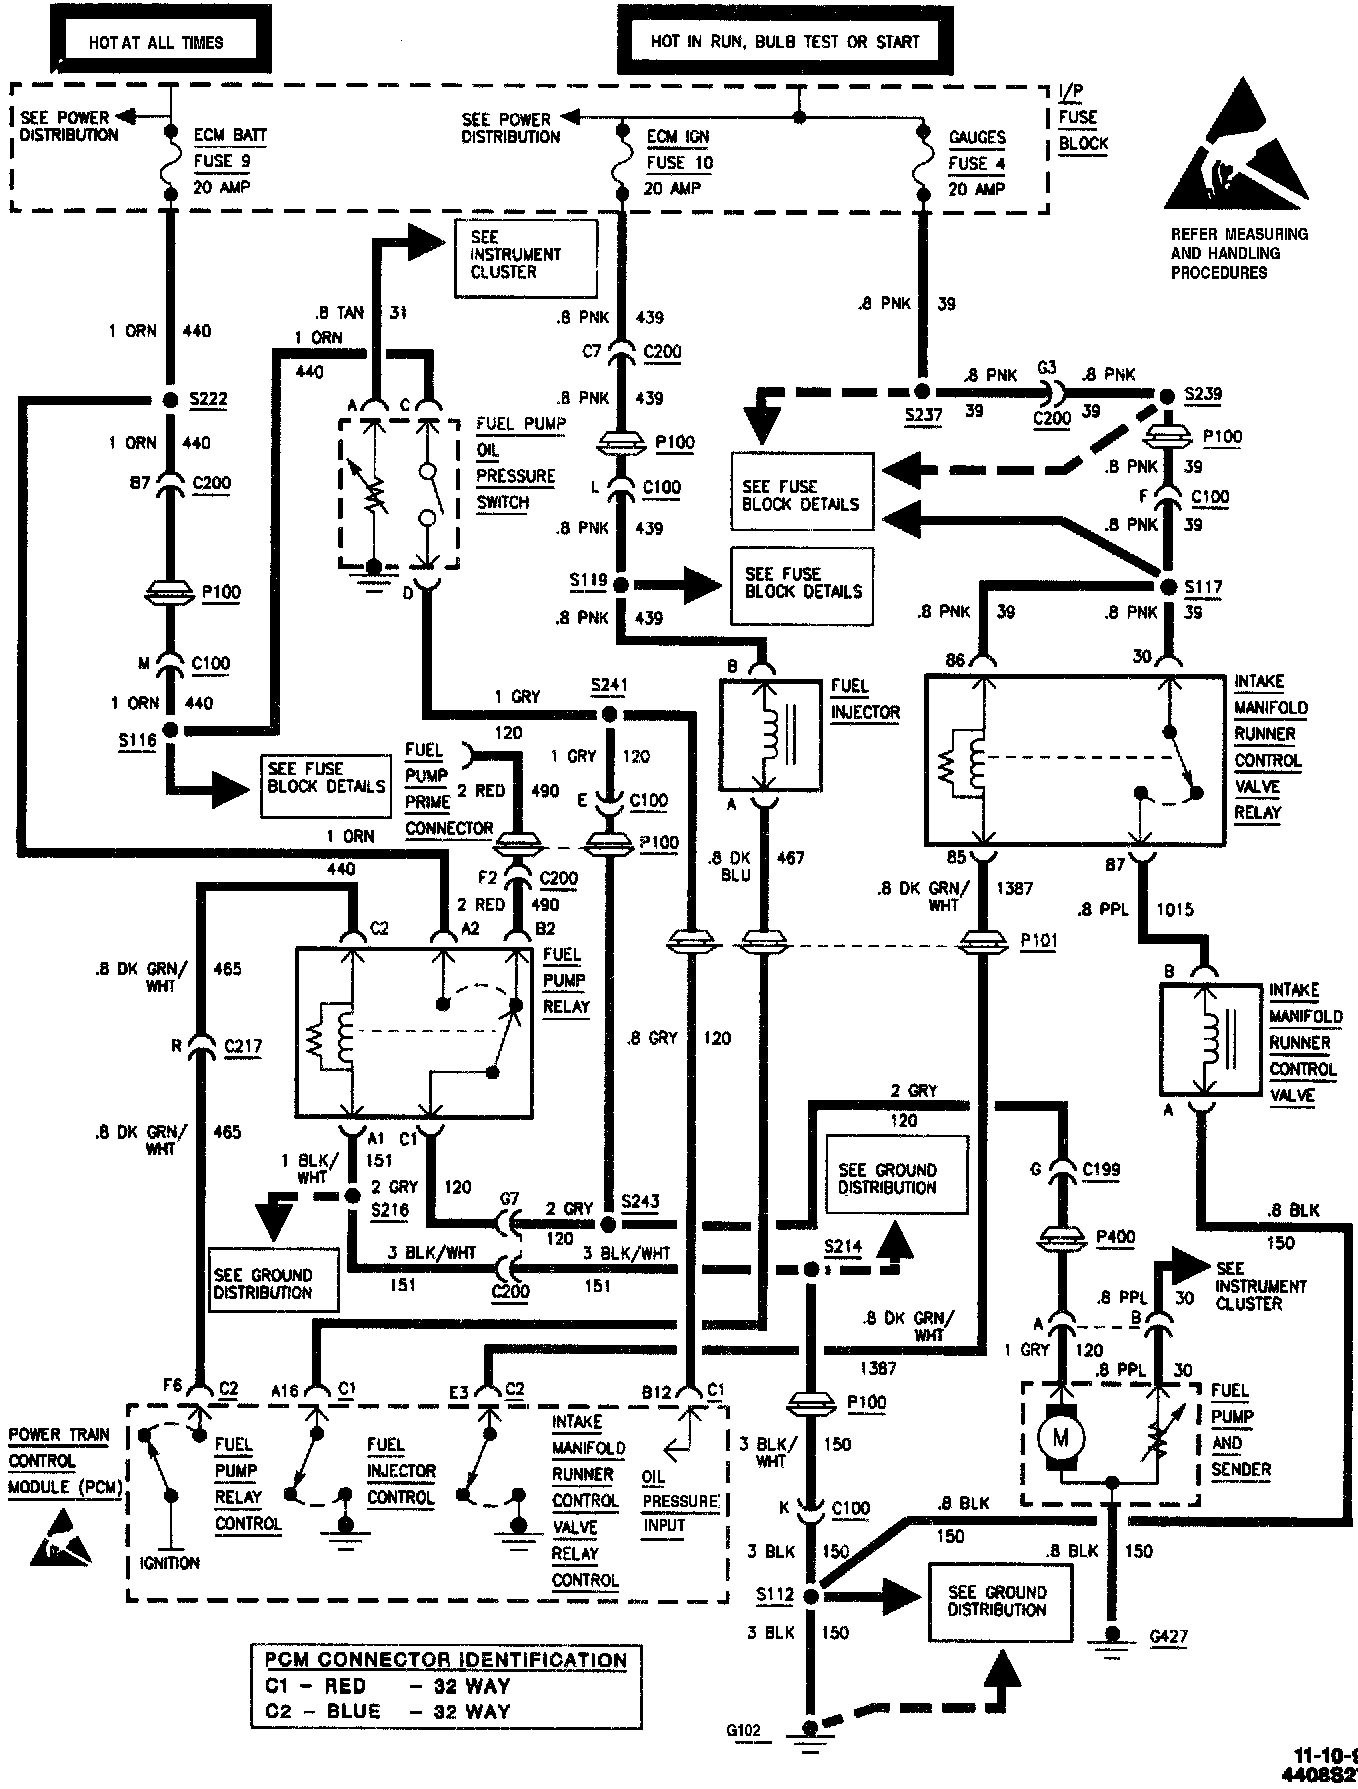 hight resolution of 91 blazer wiring schematic schema diagram database91 blazer wiring diagram schema diagram database 91 blazer wiring